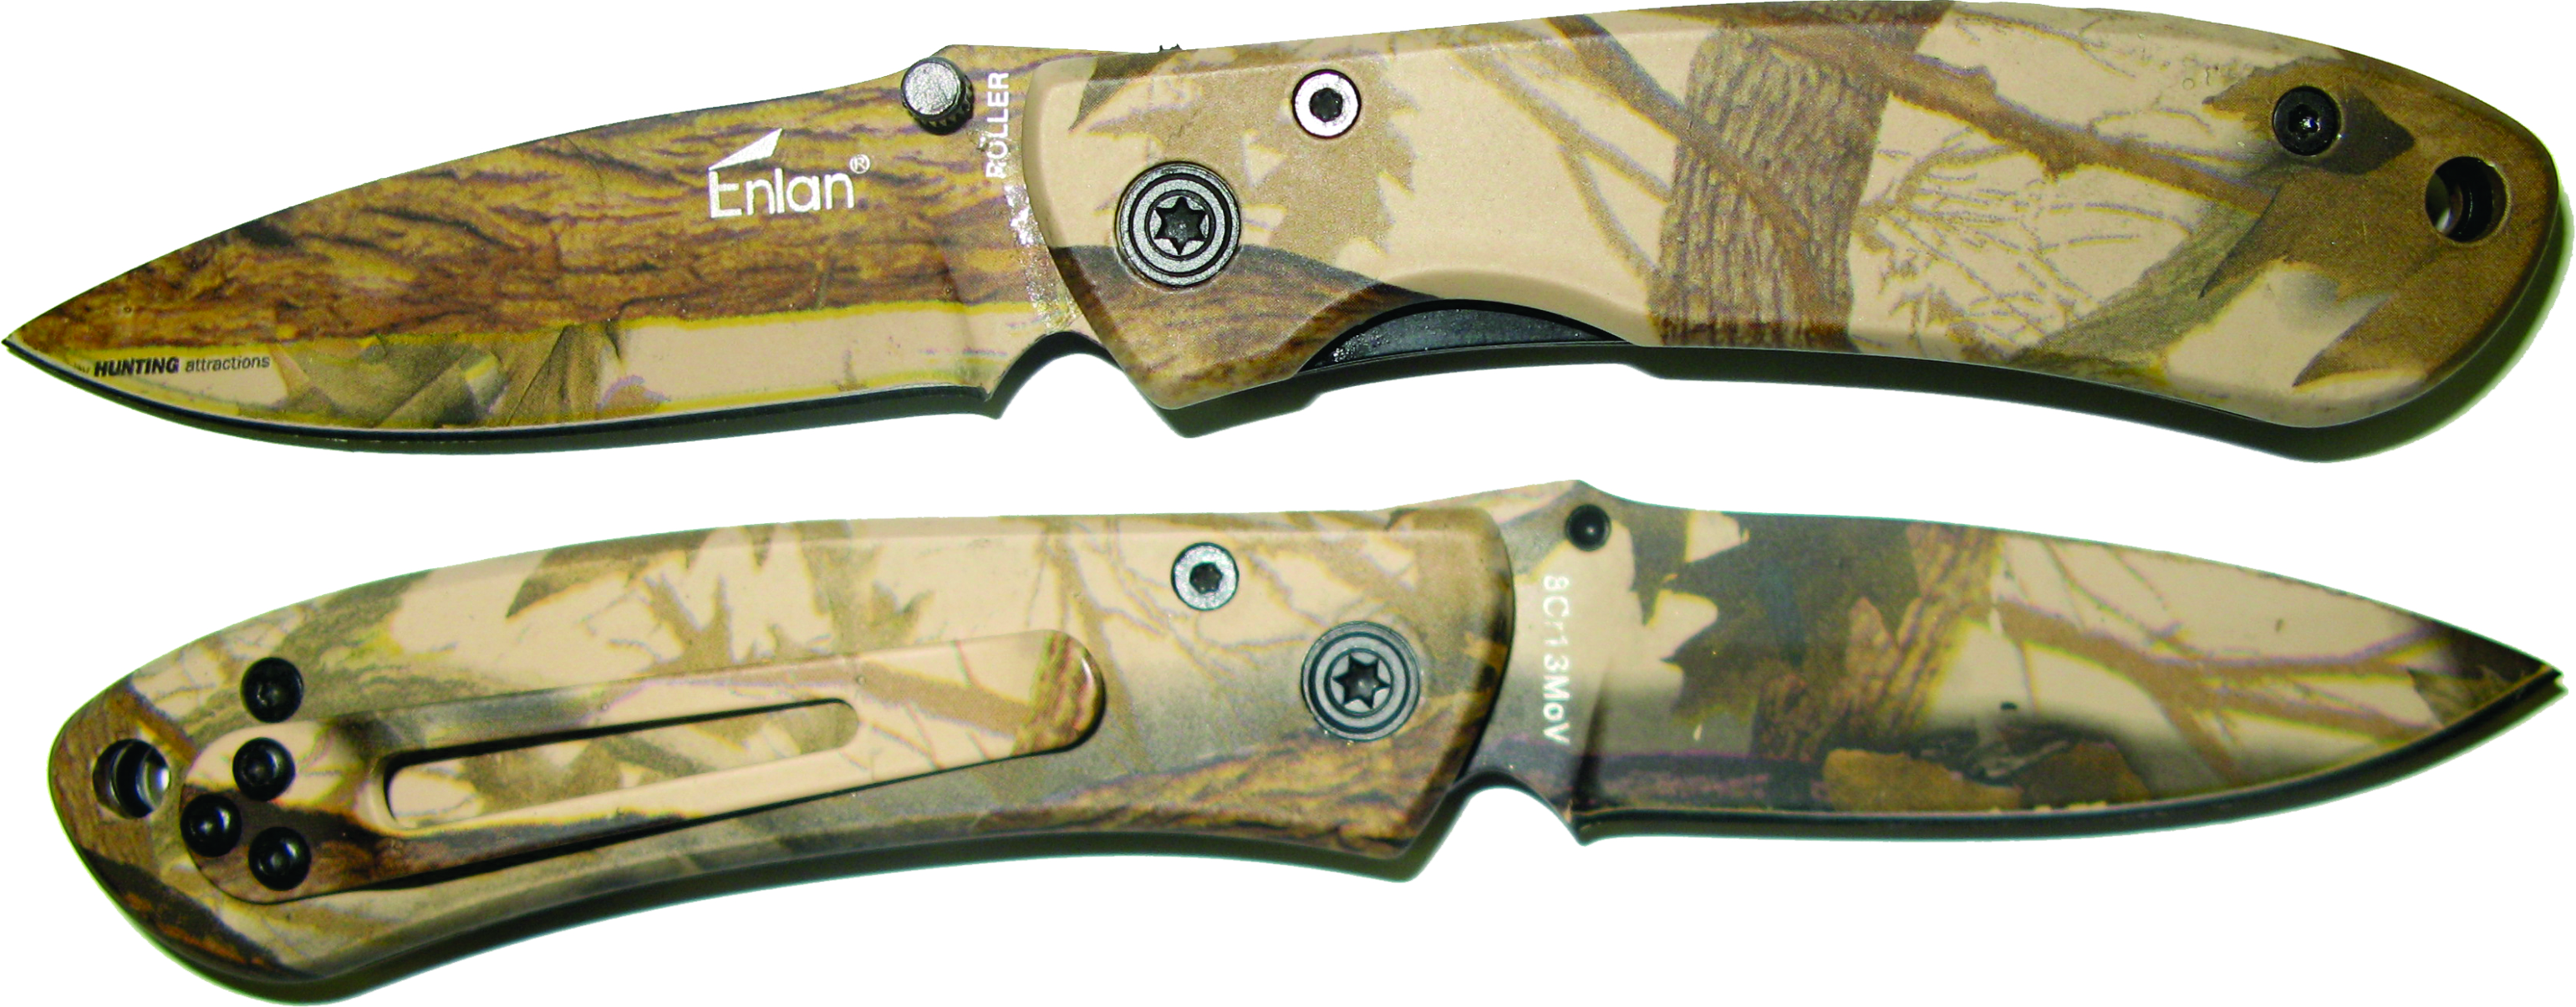 Enlan Roller. A great entry level colour coded knife.